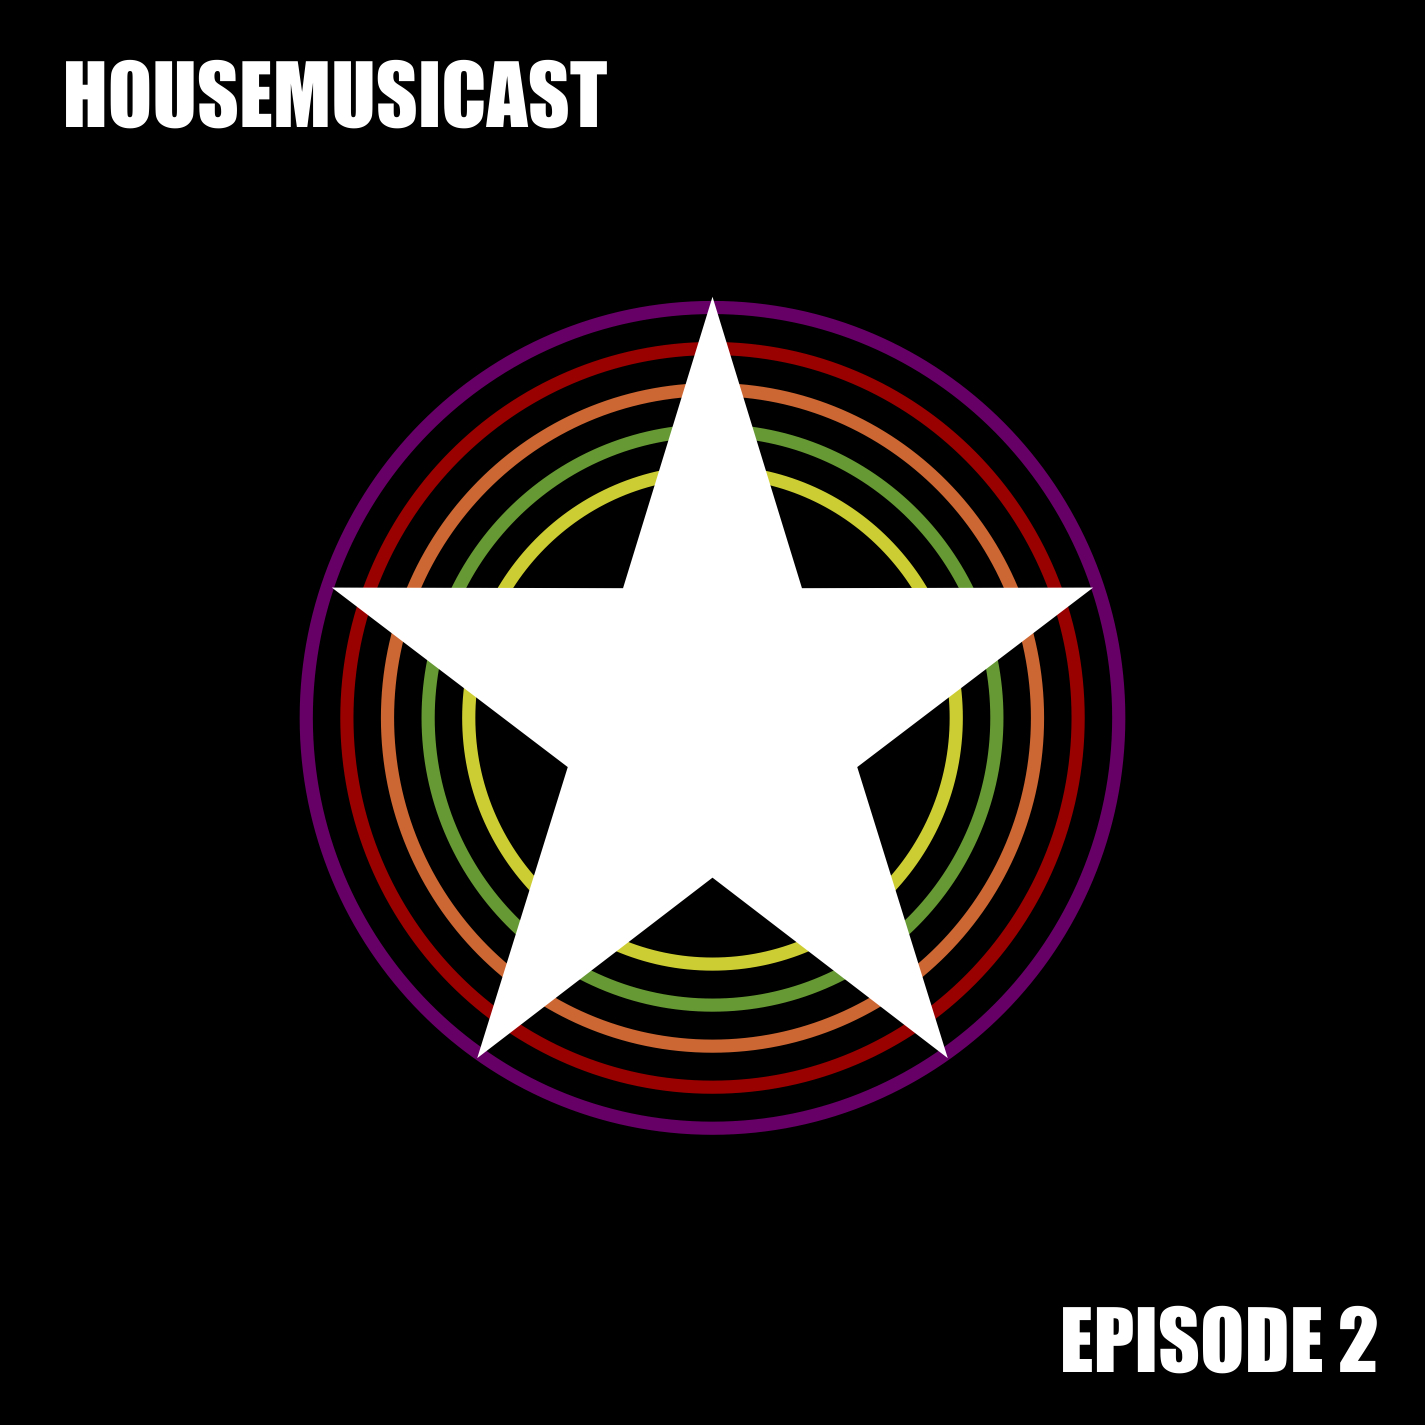 House music cast episode 2 house music cast podcast for House music podcast